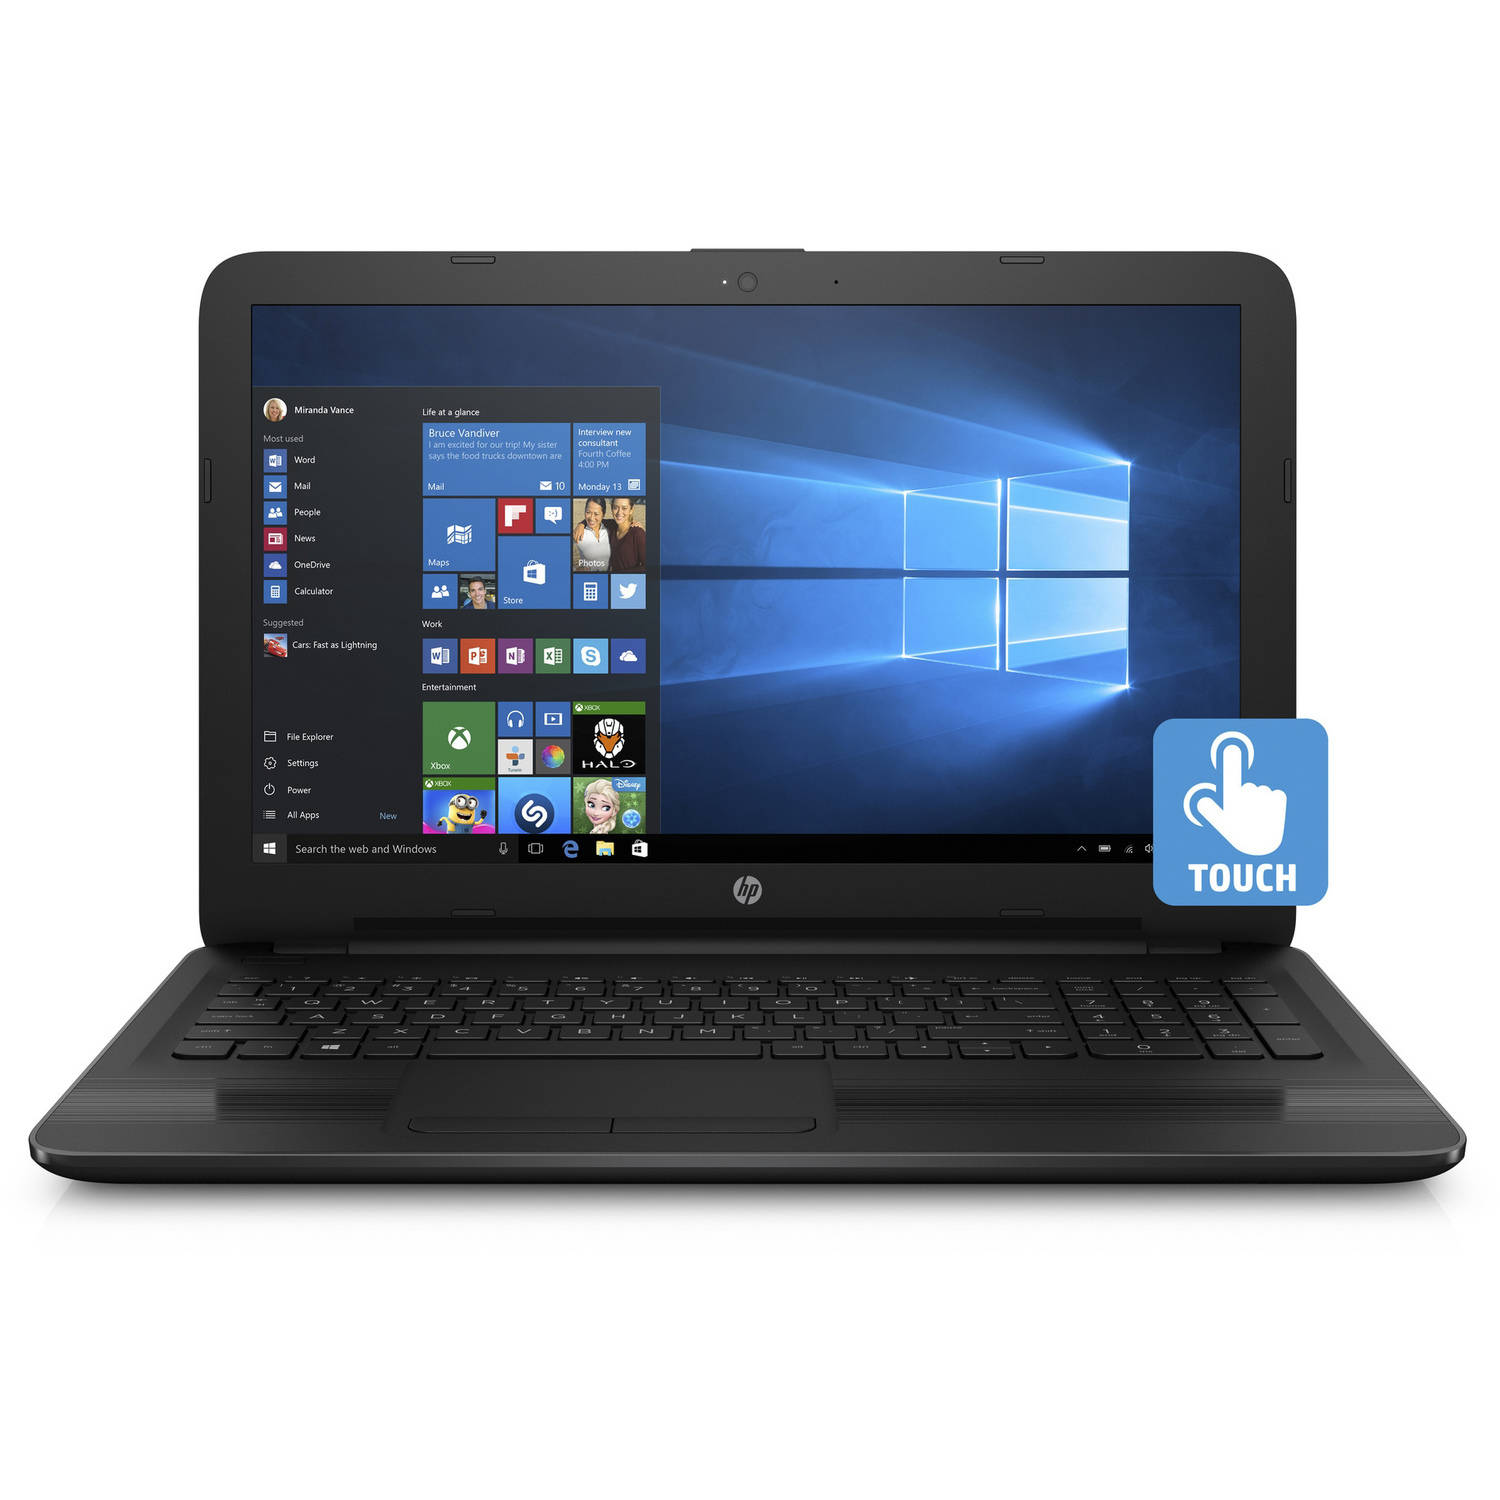 Hewlett Packard HP 15 - ba043wm 15.6 Laptop, Touchscreen, Windows 10 Home, AMD A10 - 9600P APU Processor, 8GB RAM, 1TB Hard Drive